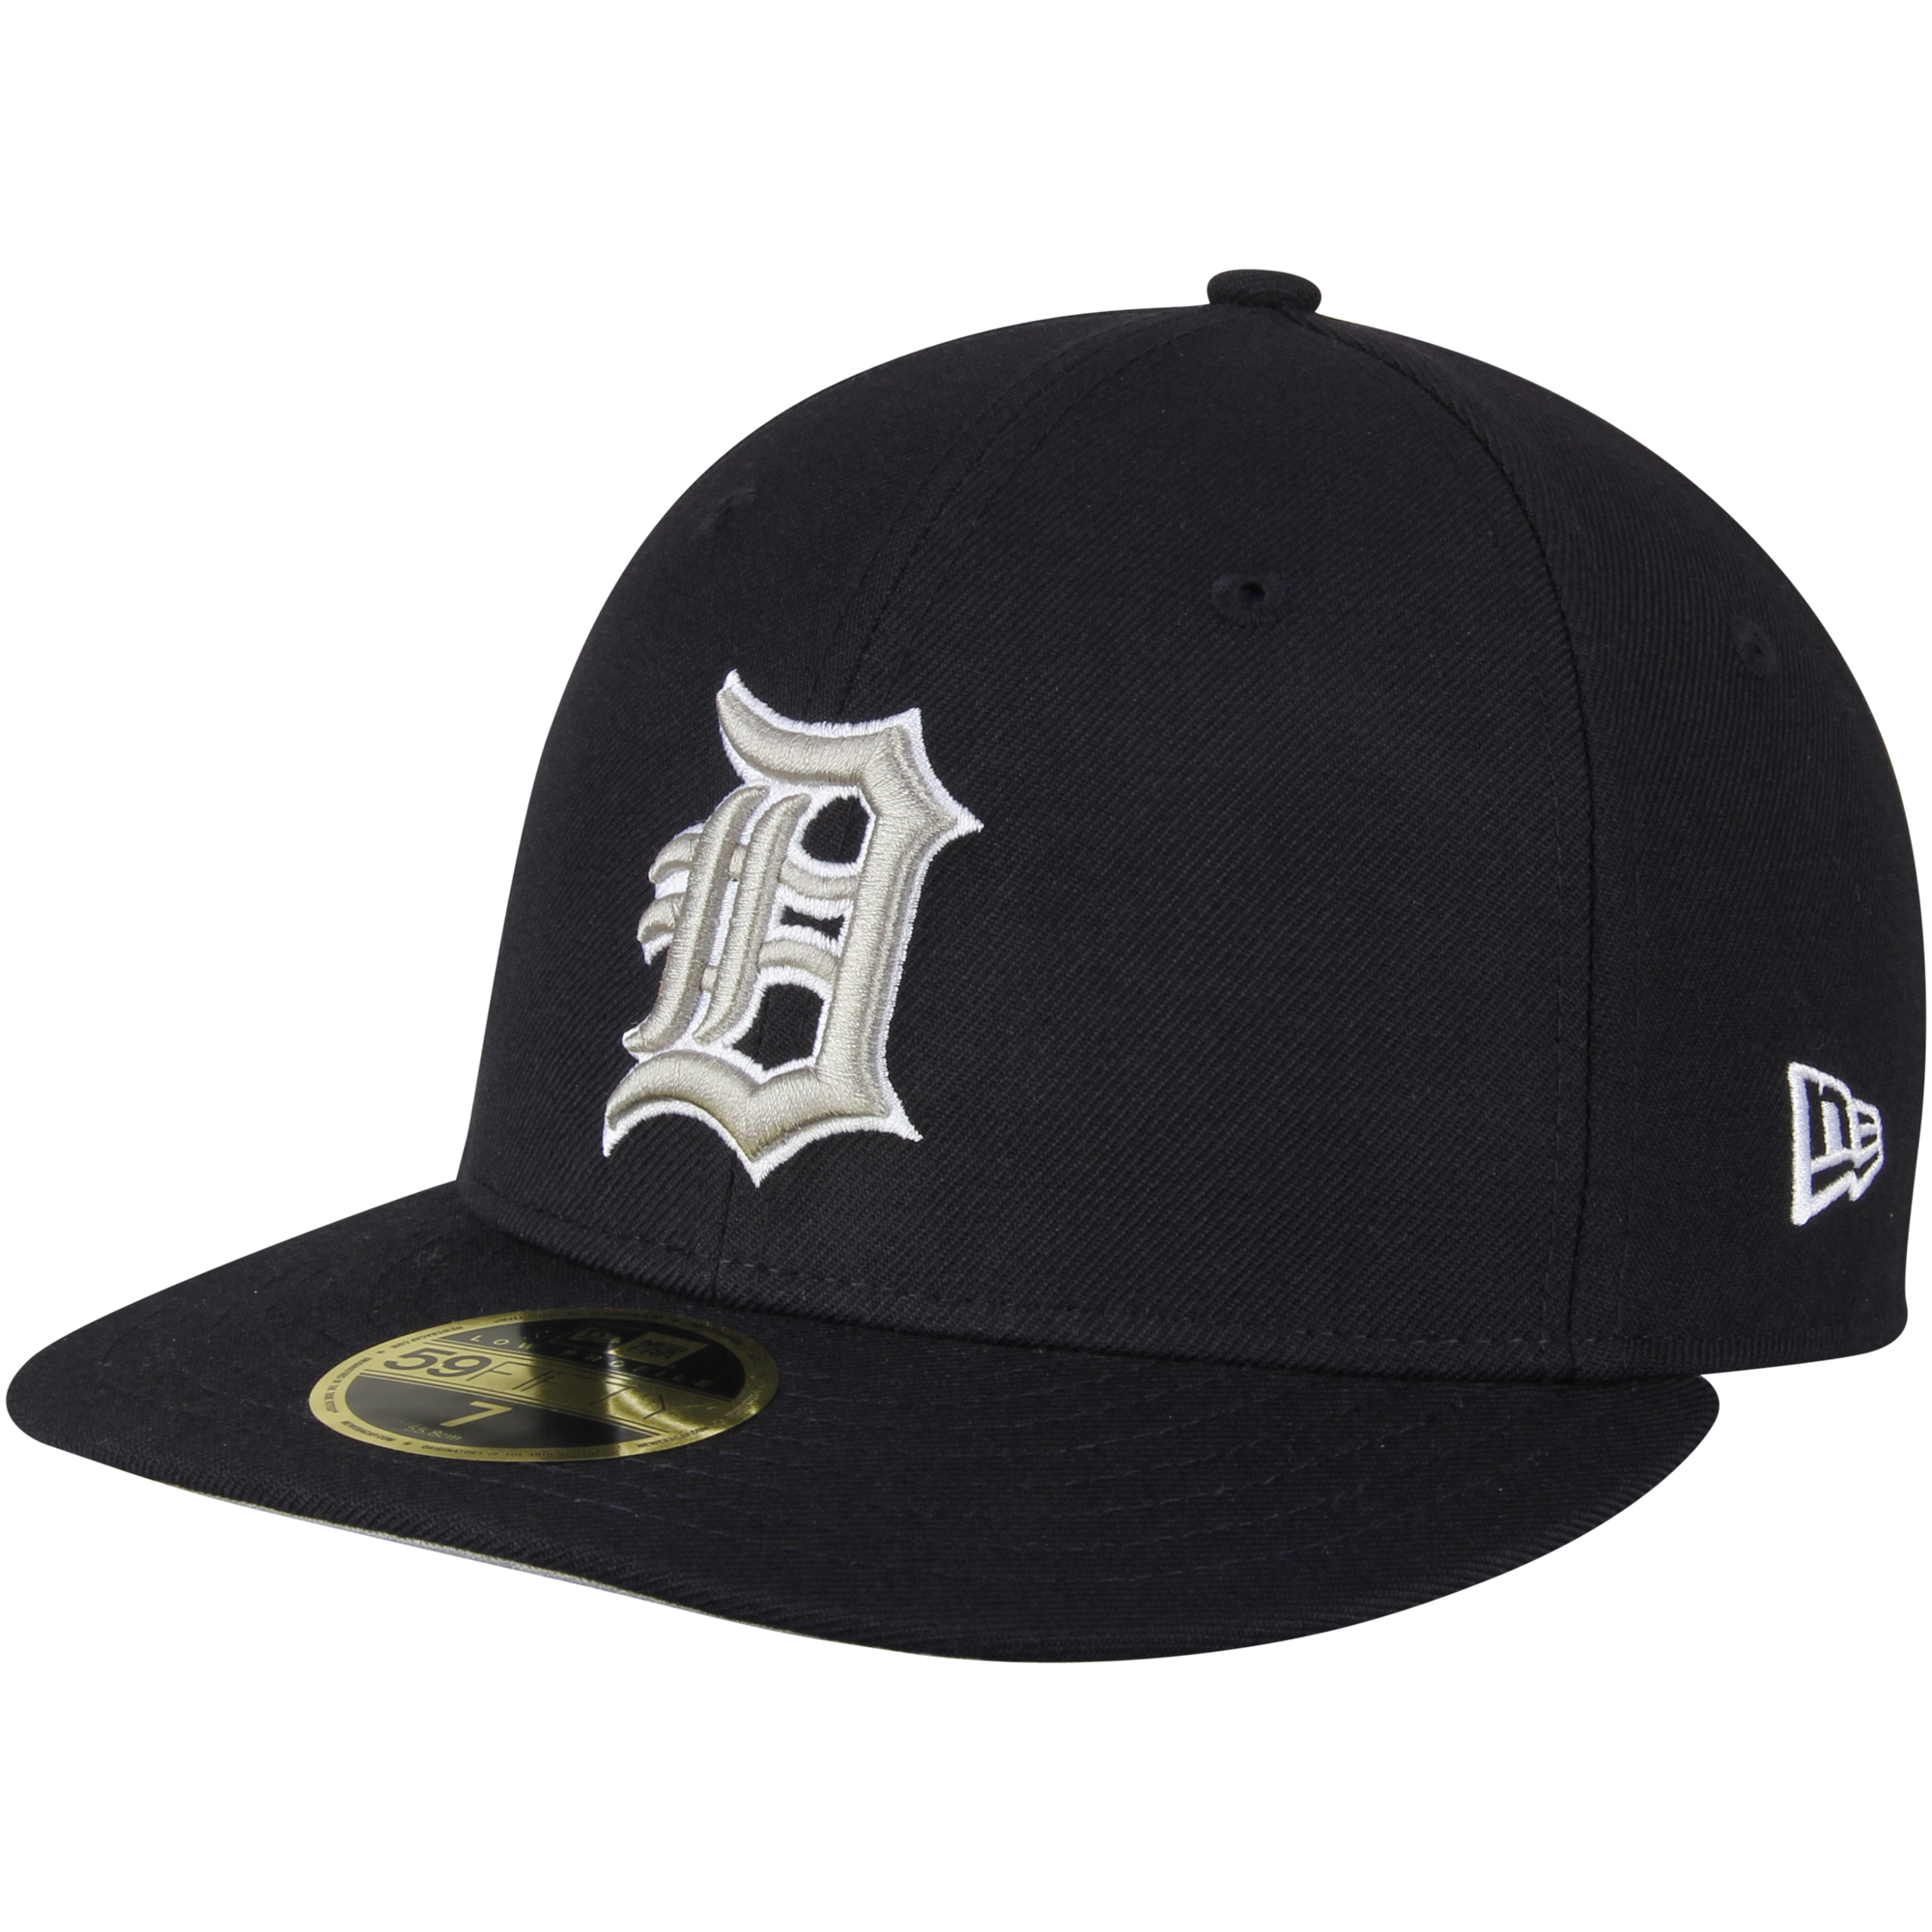 a11fd284492d8 ... top quality detroit tigers new era standard 2 low profile 59fifty fitted  hat navy walmart 4c925